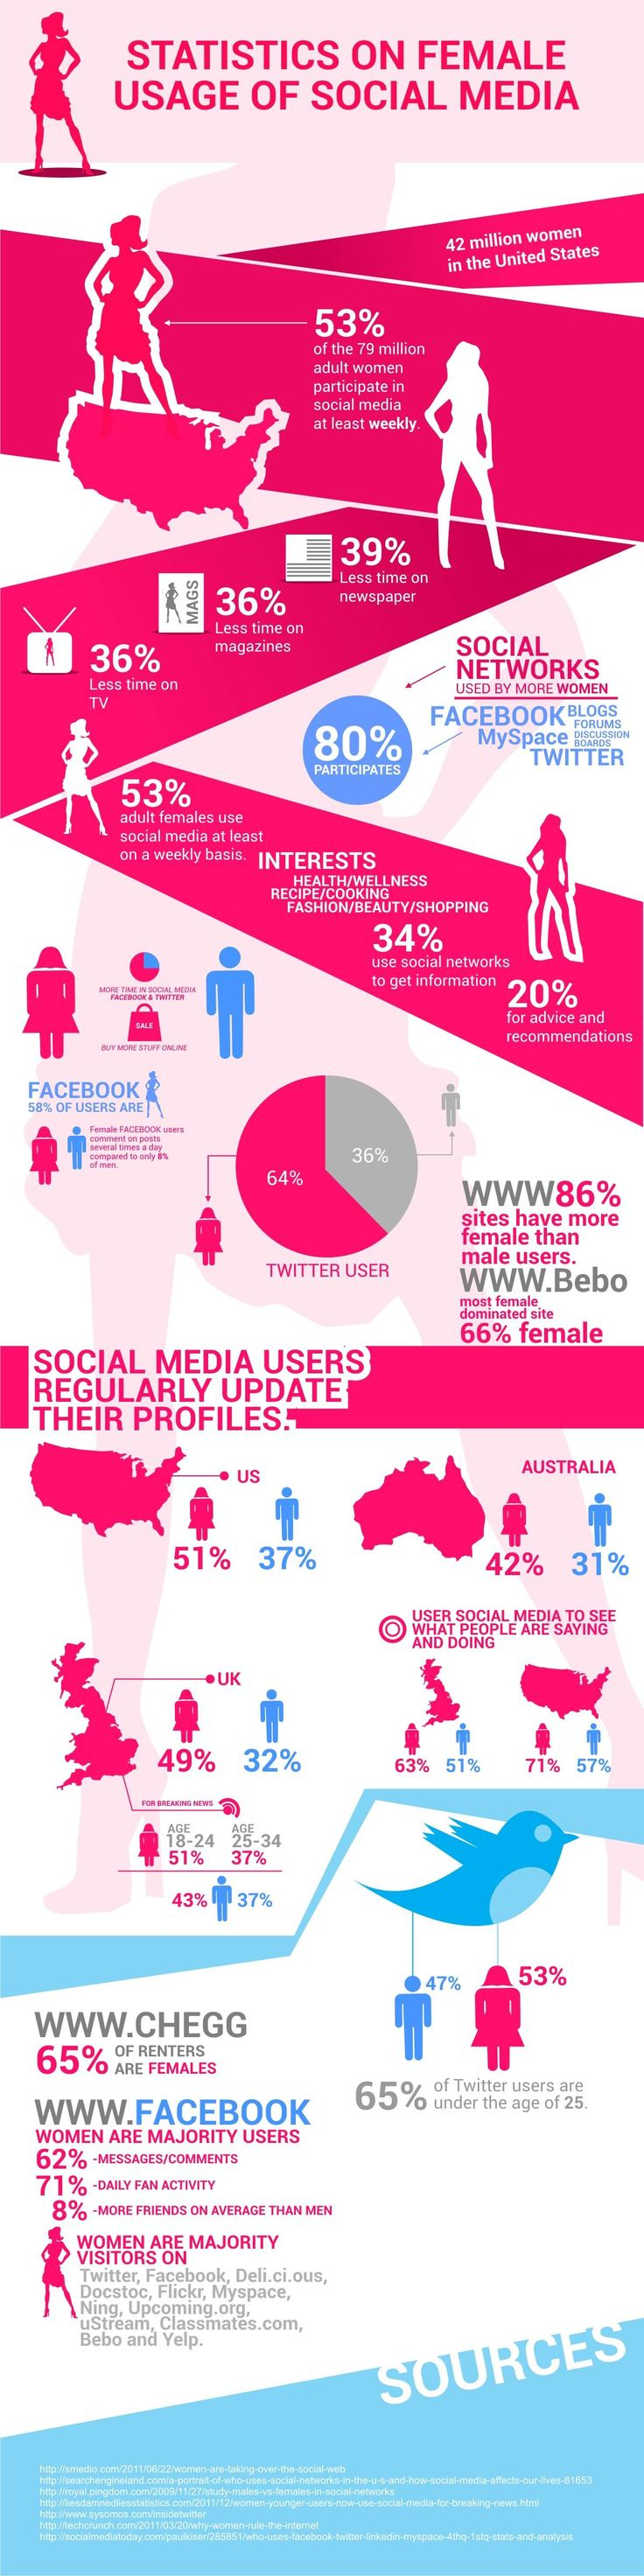 Statistics On Female Usage Of Social Media - Infographic